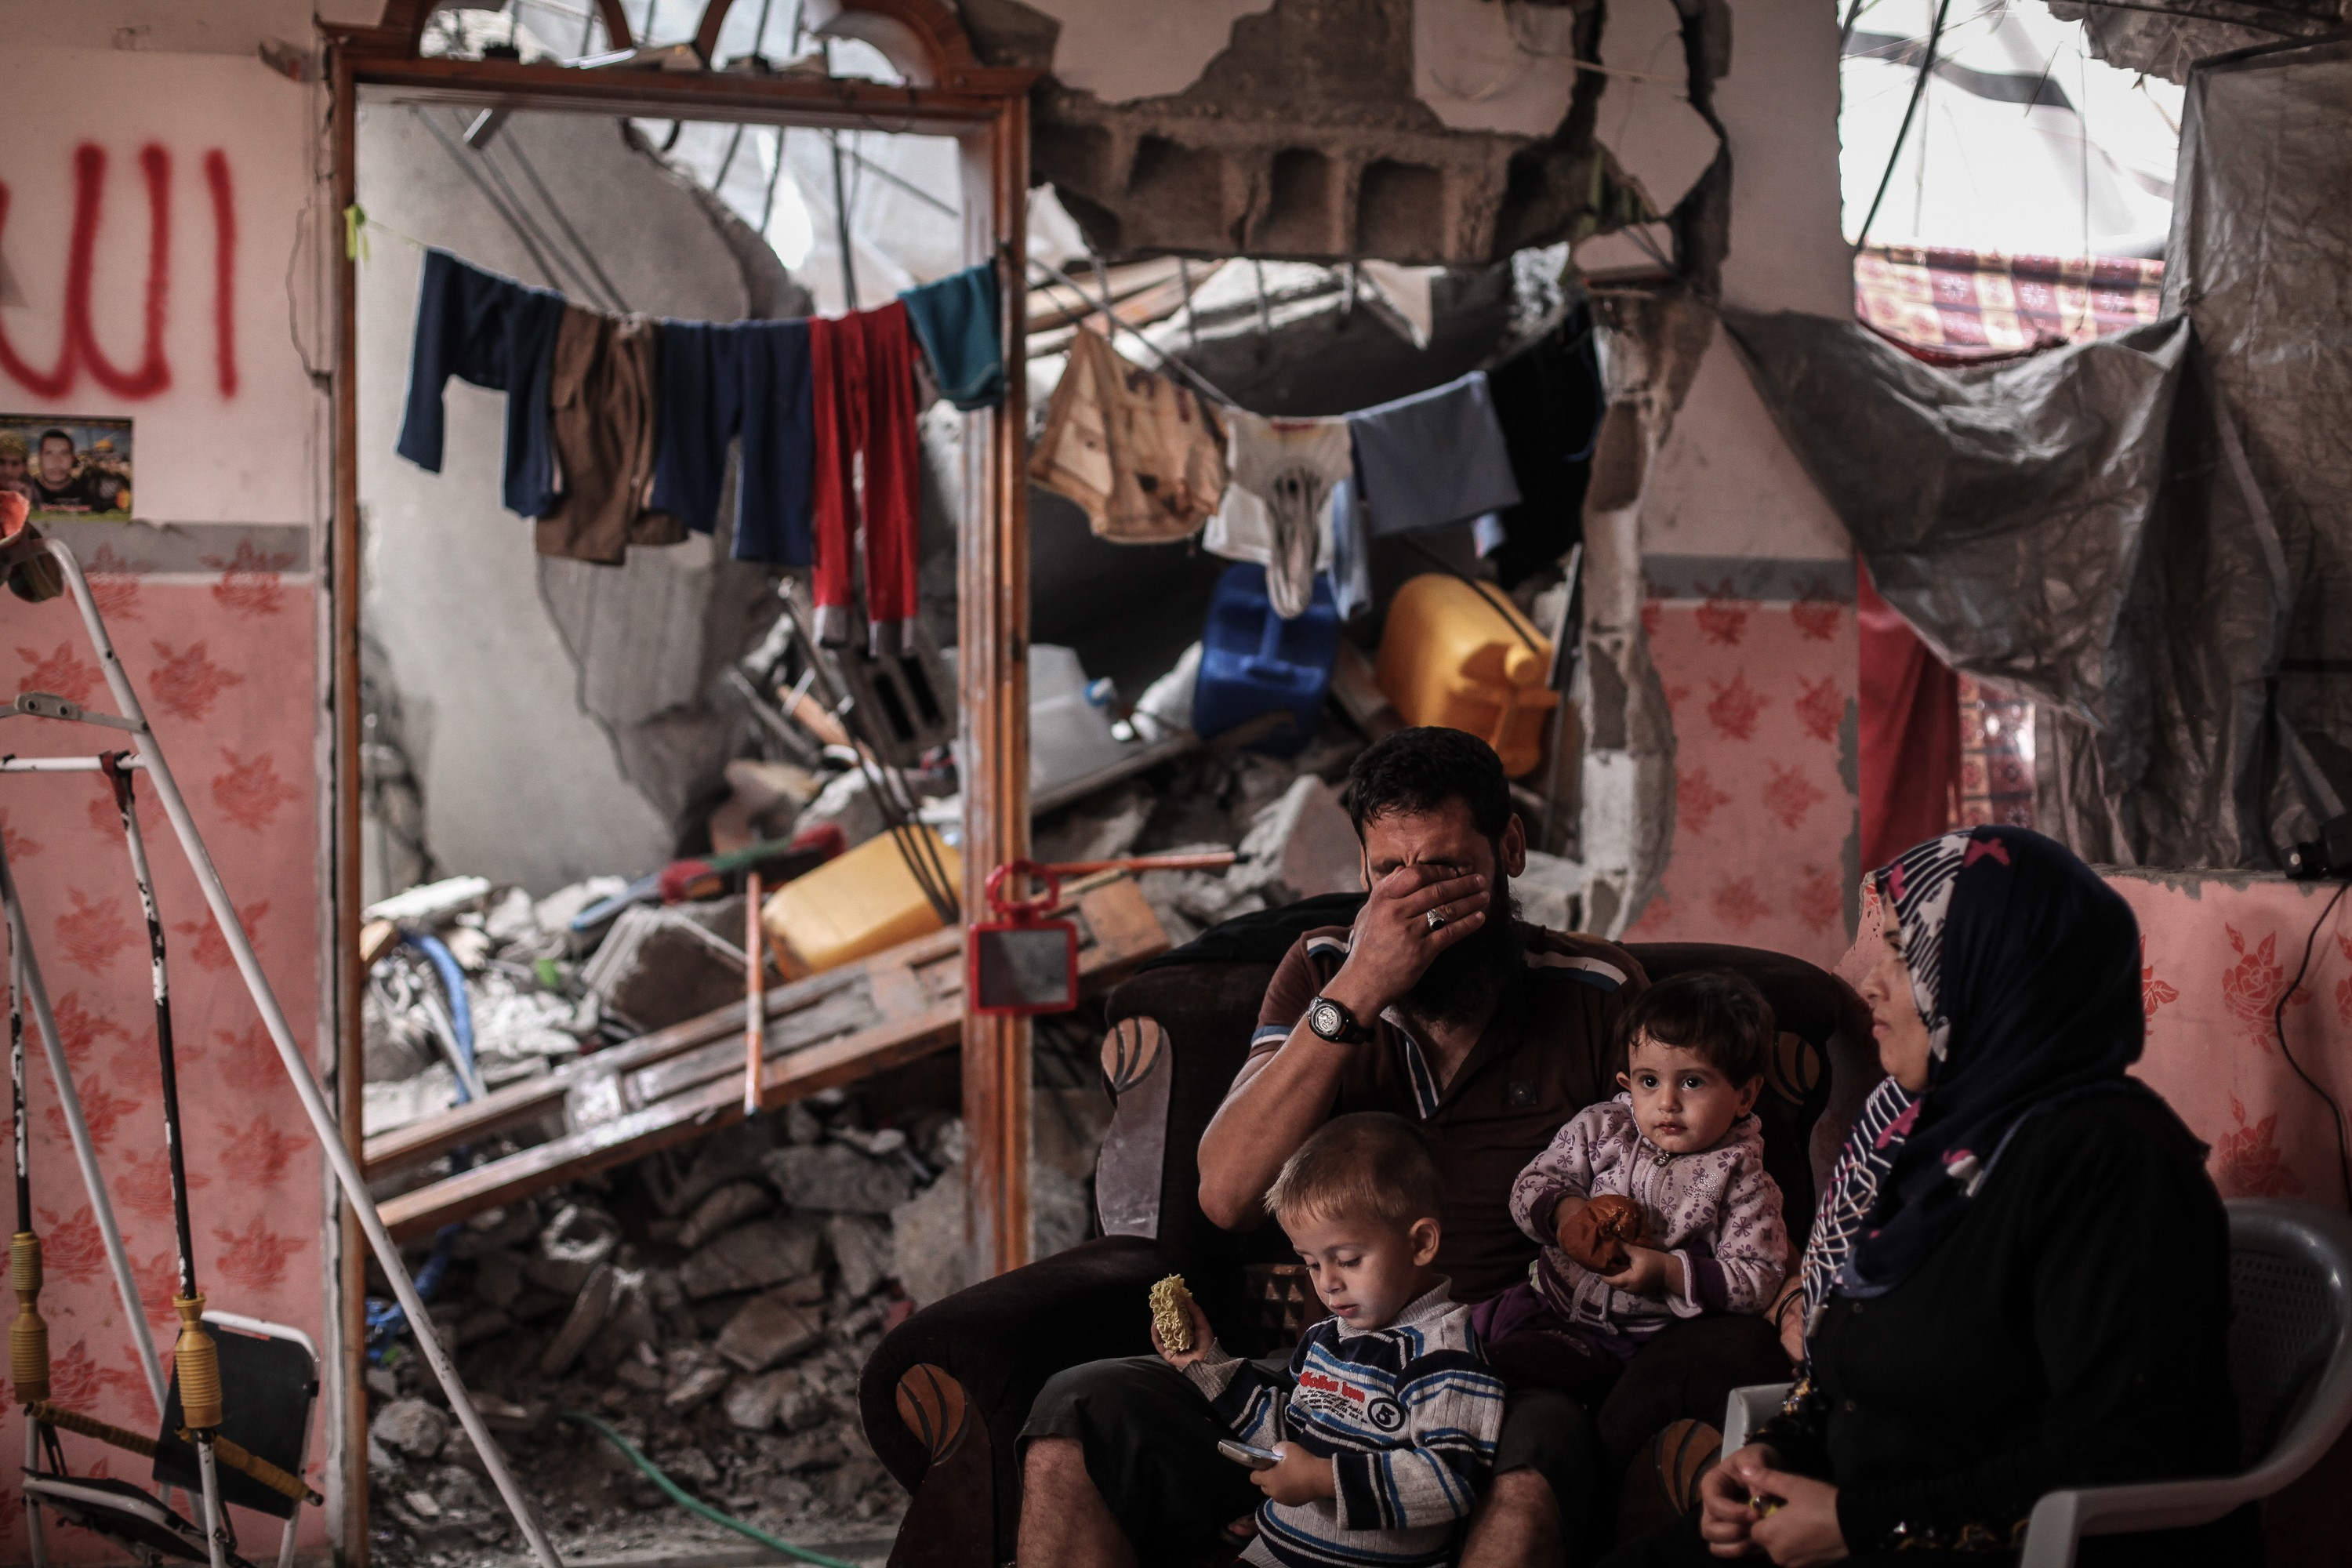 Madi Hasanein and his family are sitting in what remains of their house which was destroyed during the war, Gaza City, October 2014 / Photo Corbis